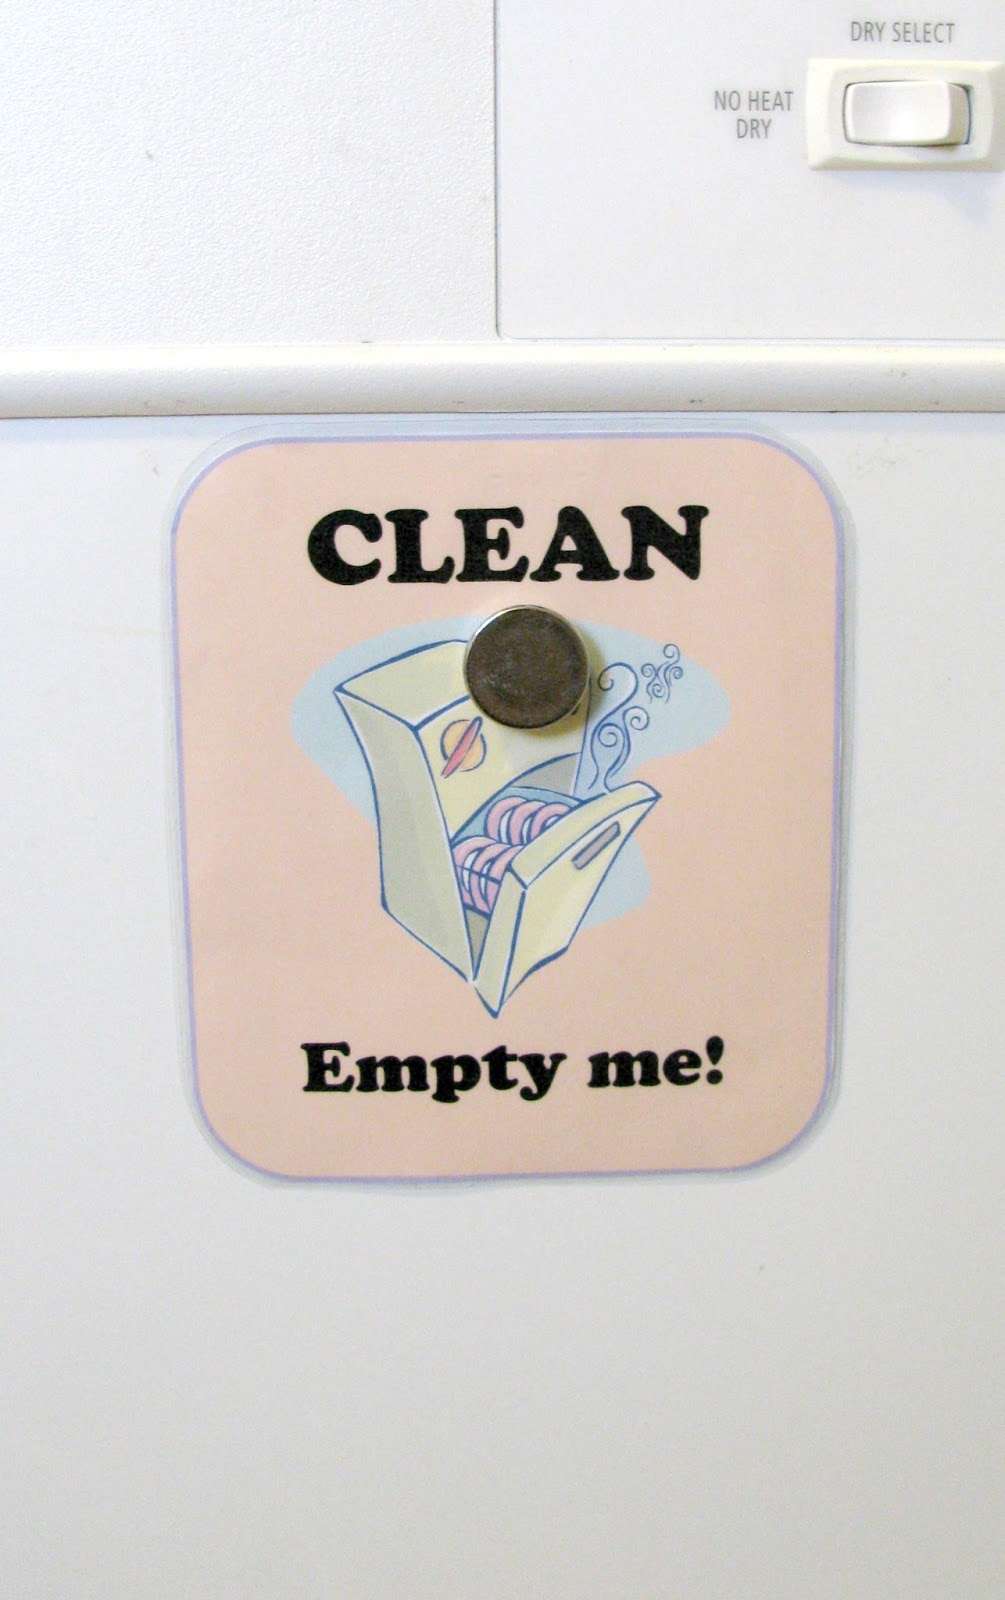 Free Dishwasher Clean Dirty Sign Printable - Free Printable Clean Dirty Dishwasher Sign